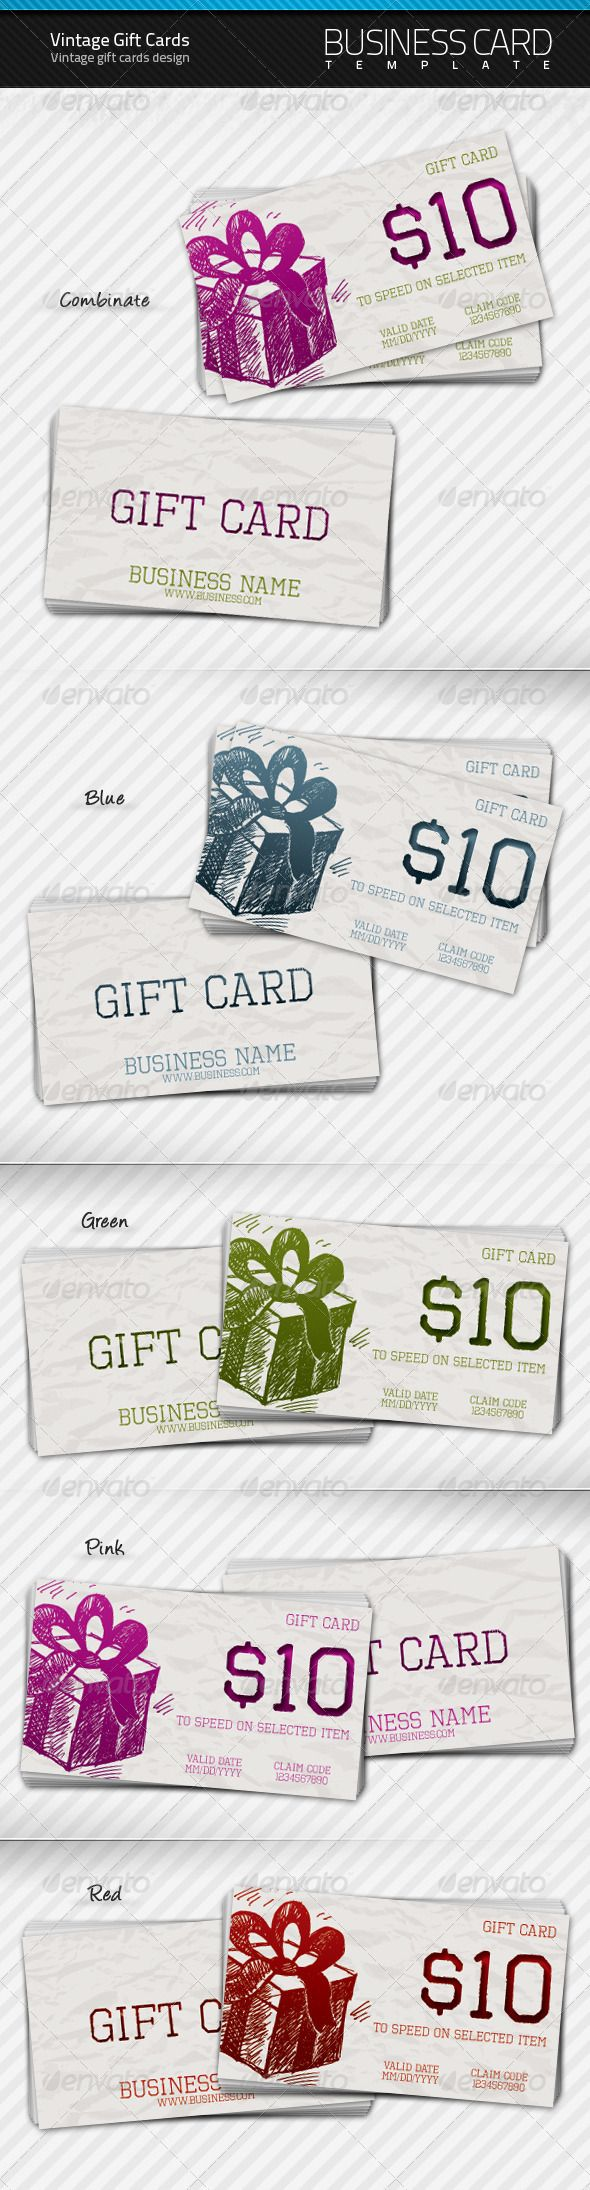 Vintage Gift Cards More Vintage Gifts And Business Cards Ideas